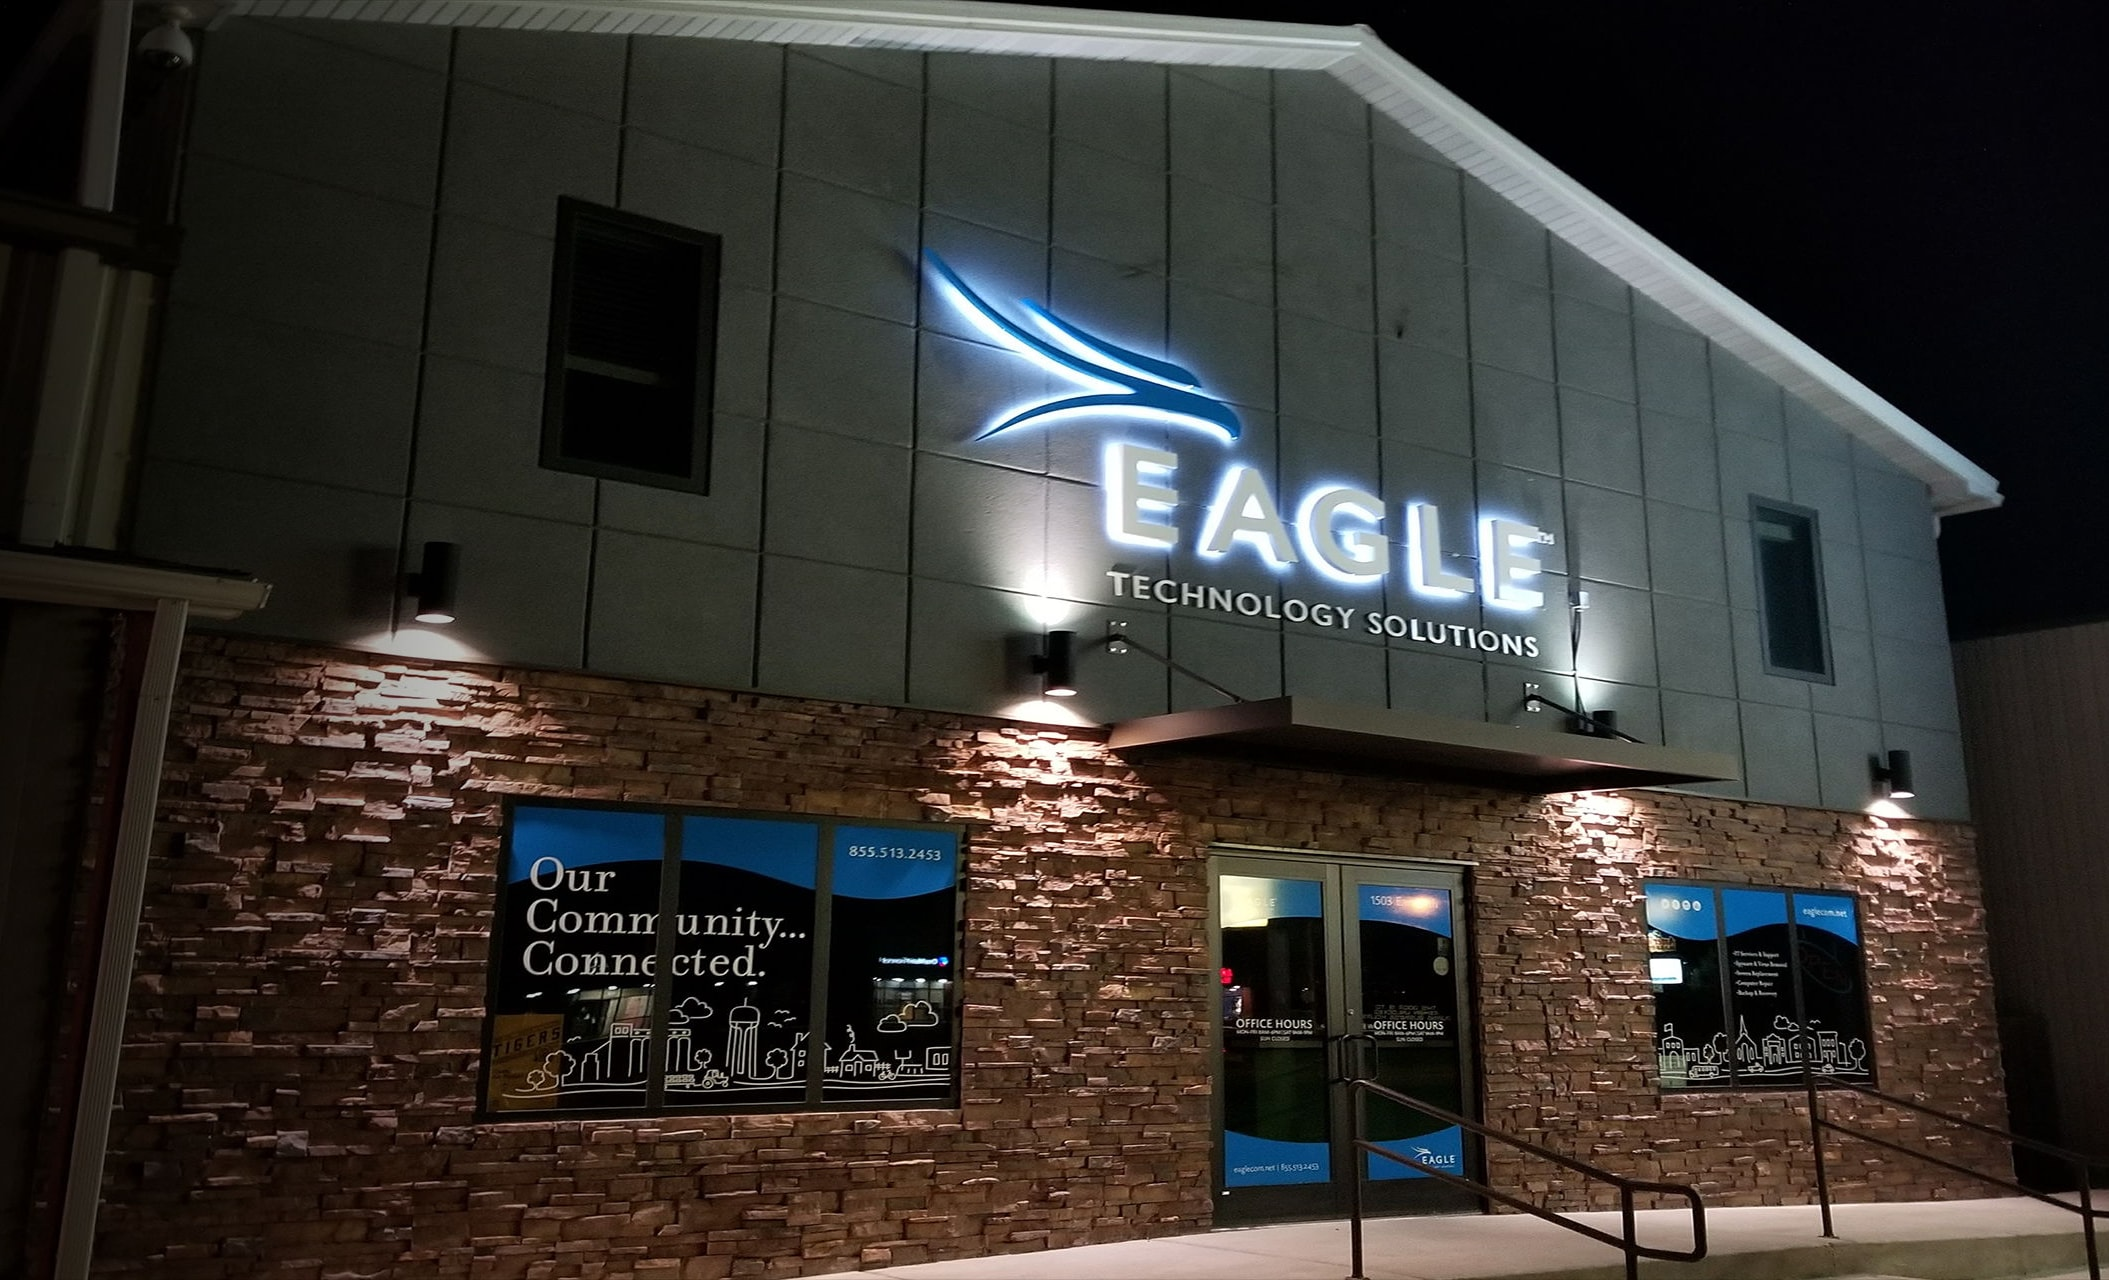 Eagle Technology Solutions building